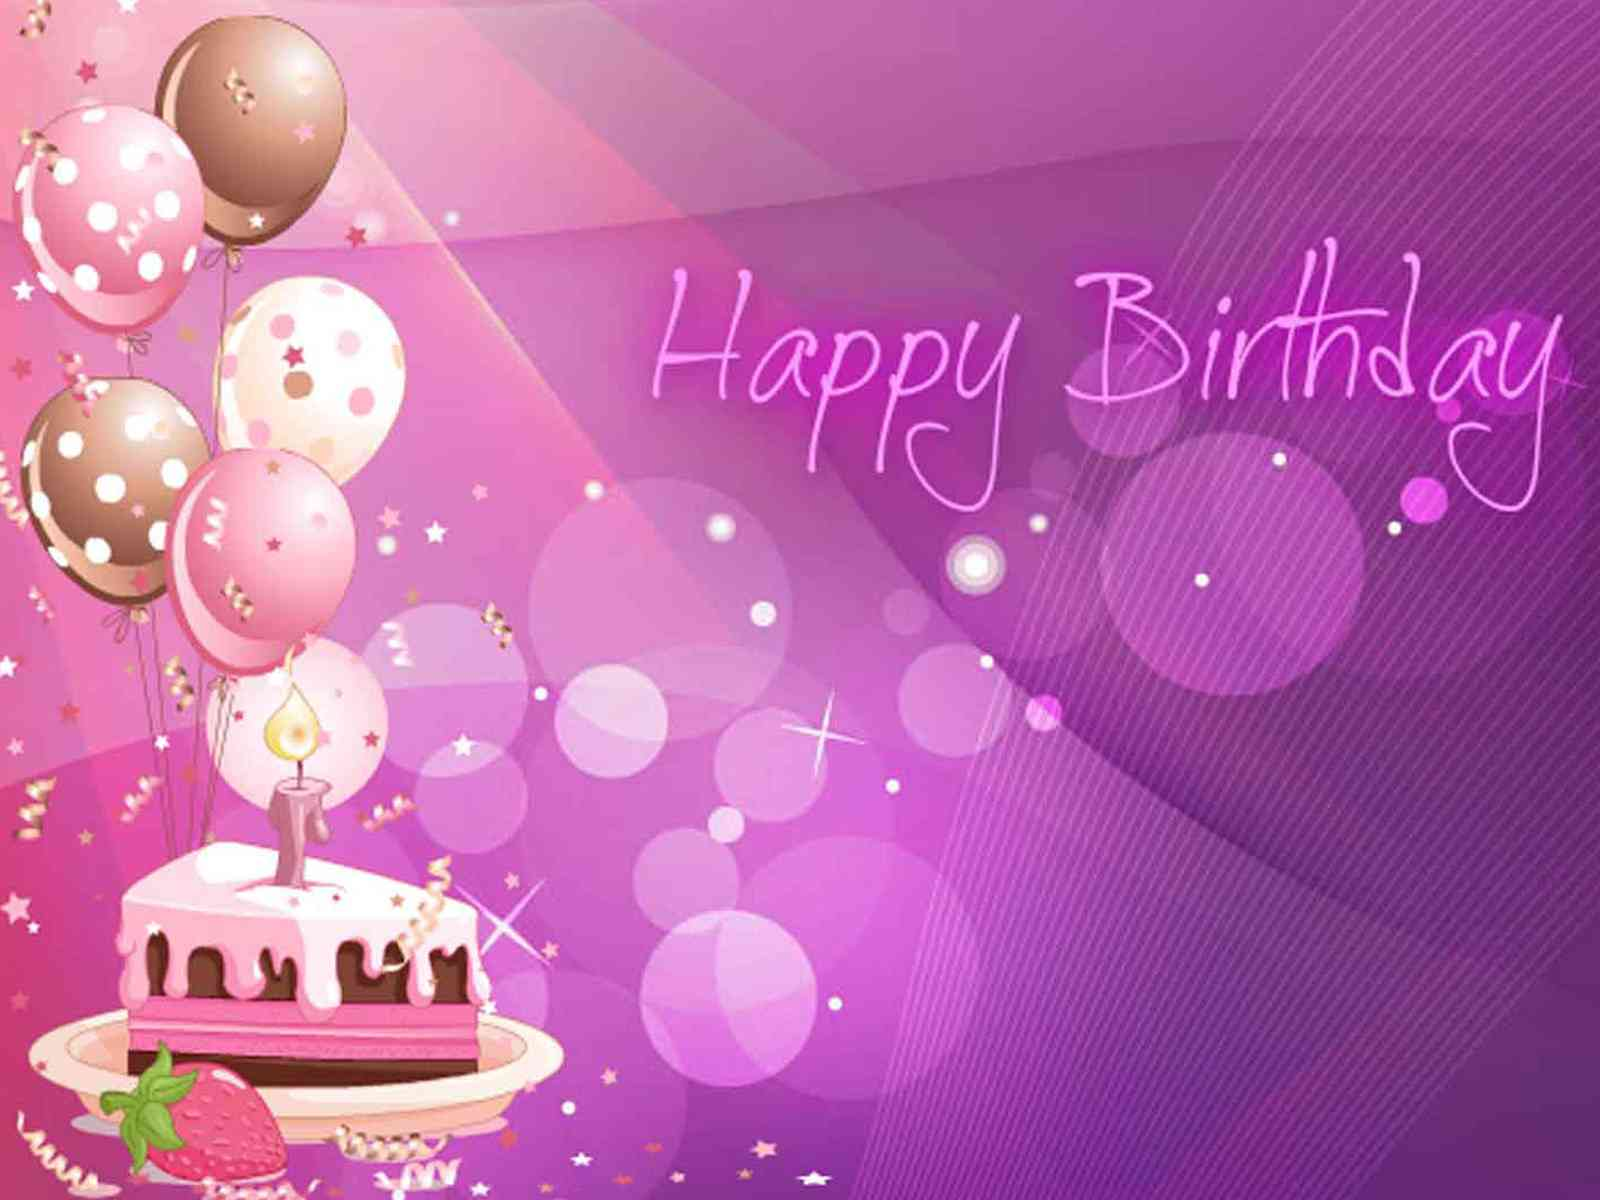 the-collection-of-heartfelt-birthday-wishes-to-send-to-girlfriend-on-her-birthday-1